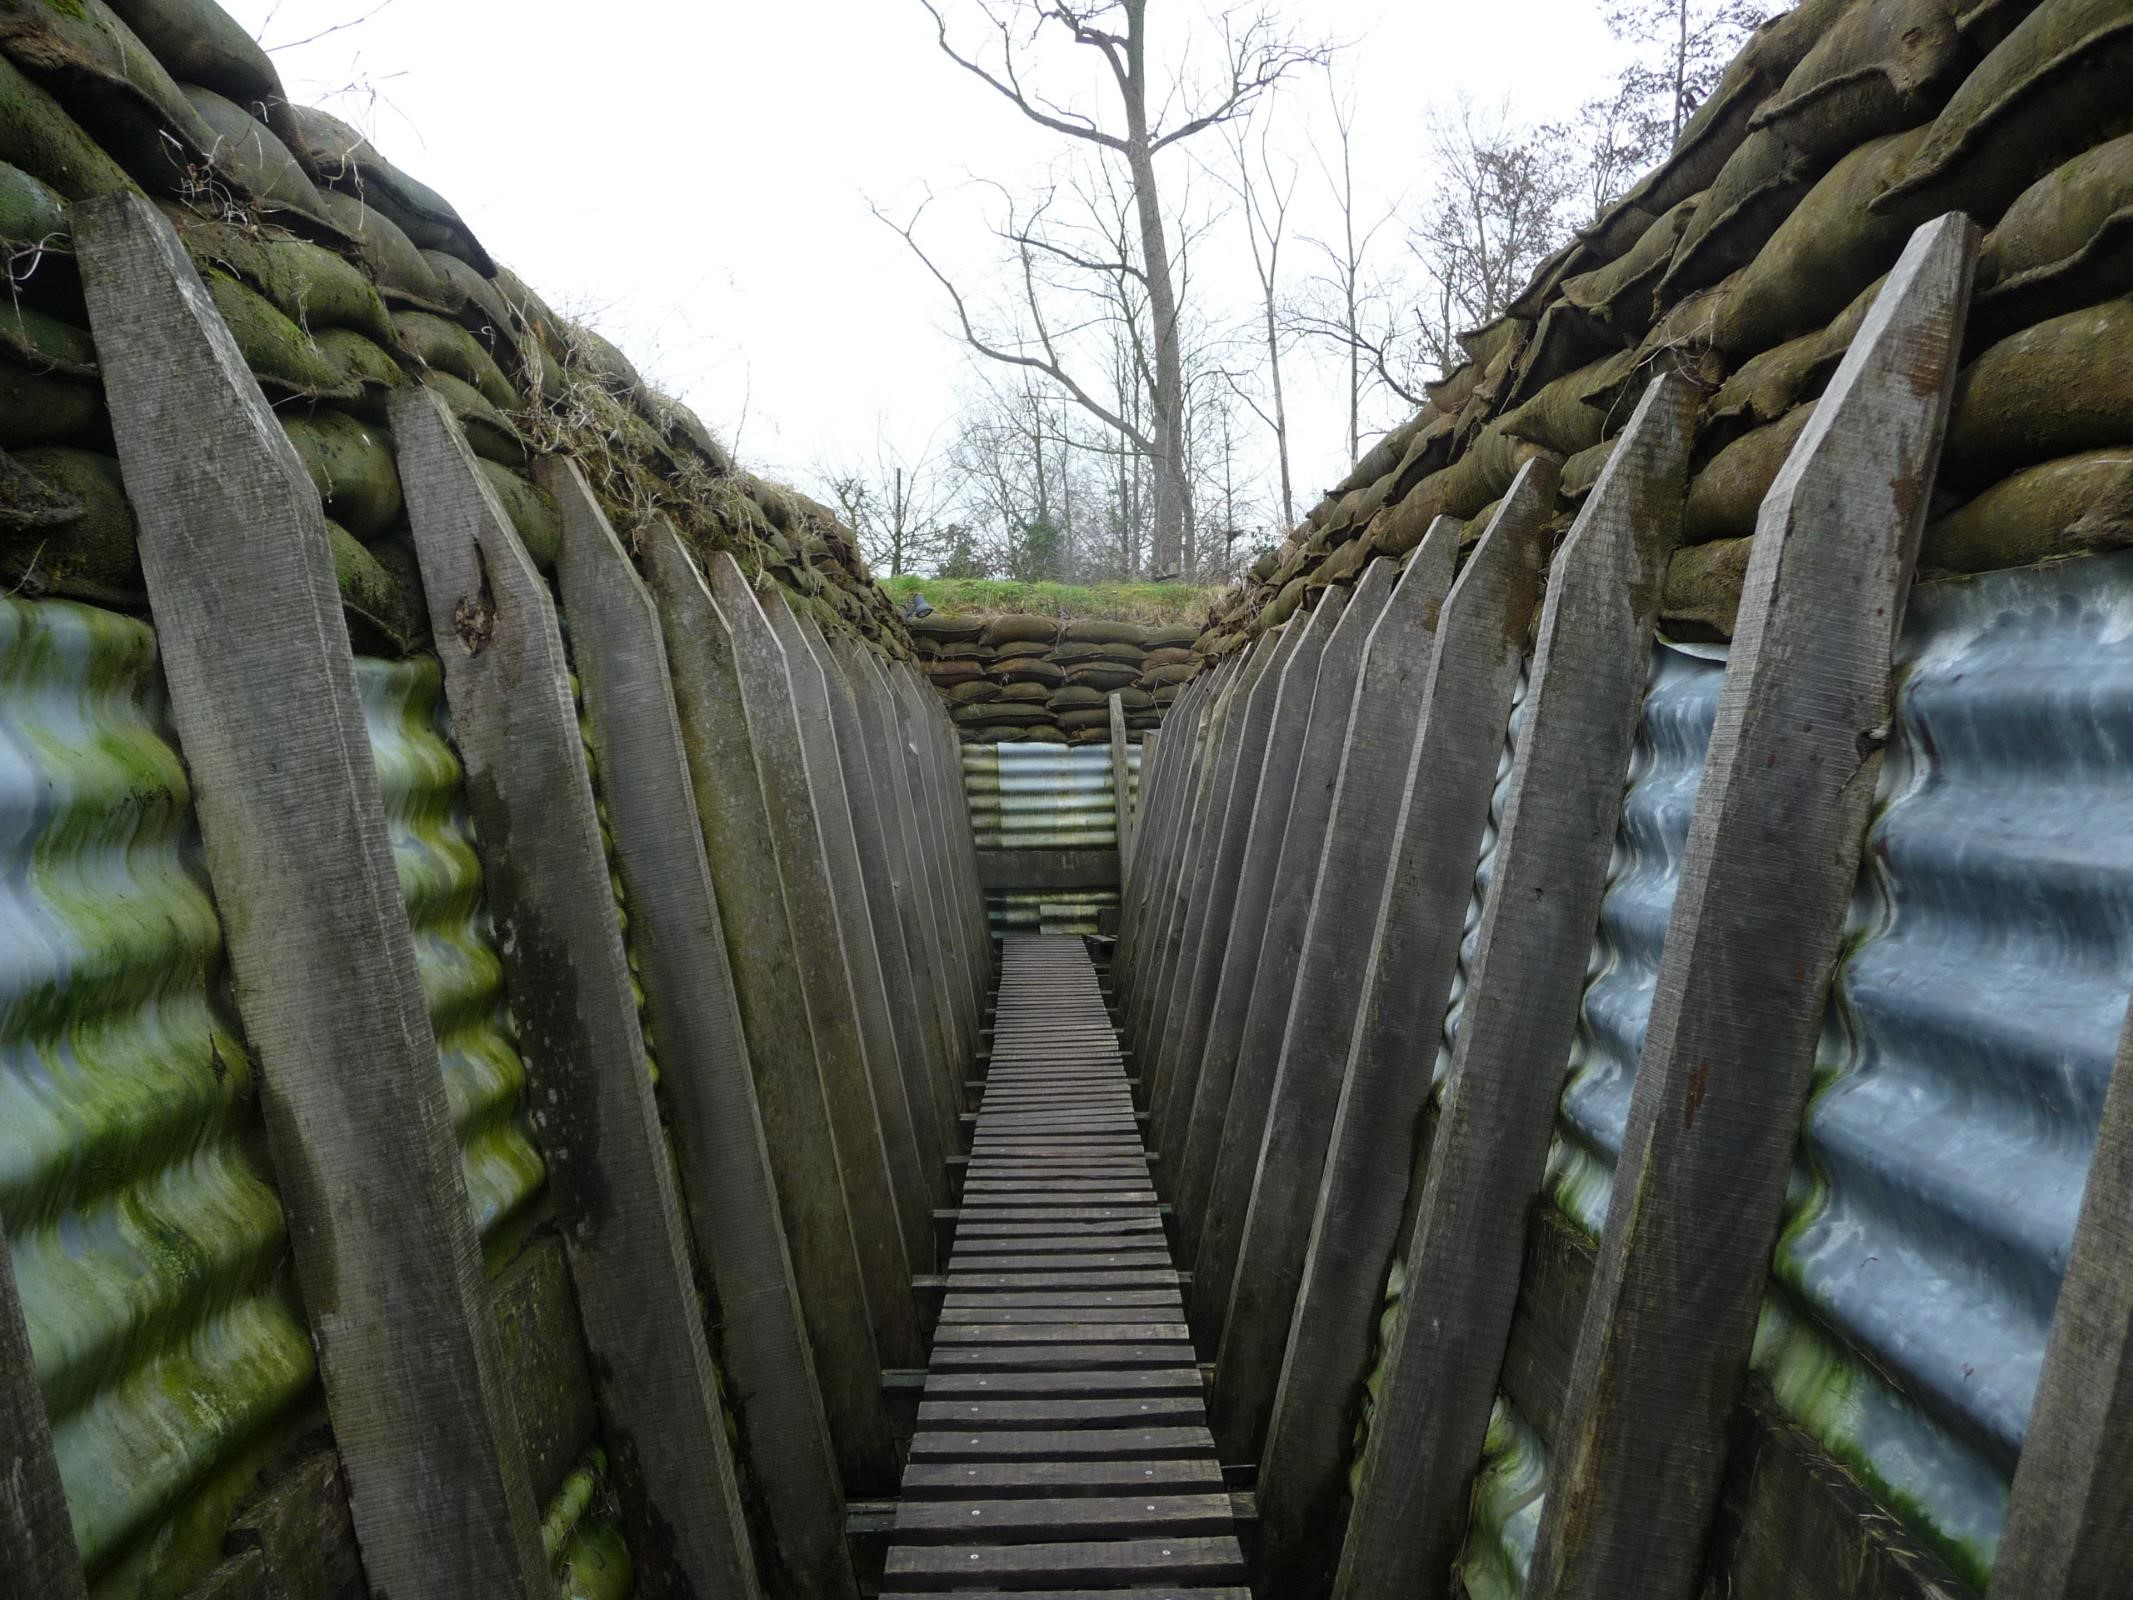 Reconstruction of first world war trenches